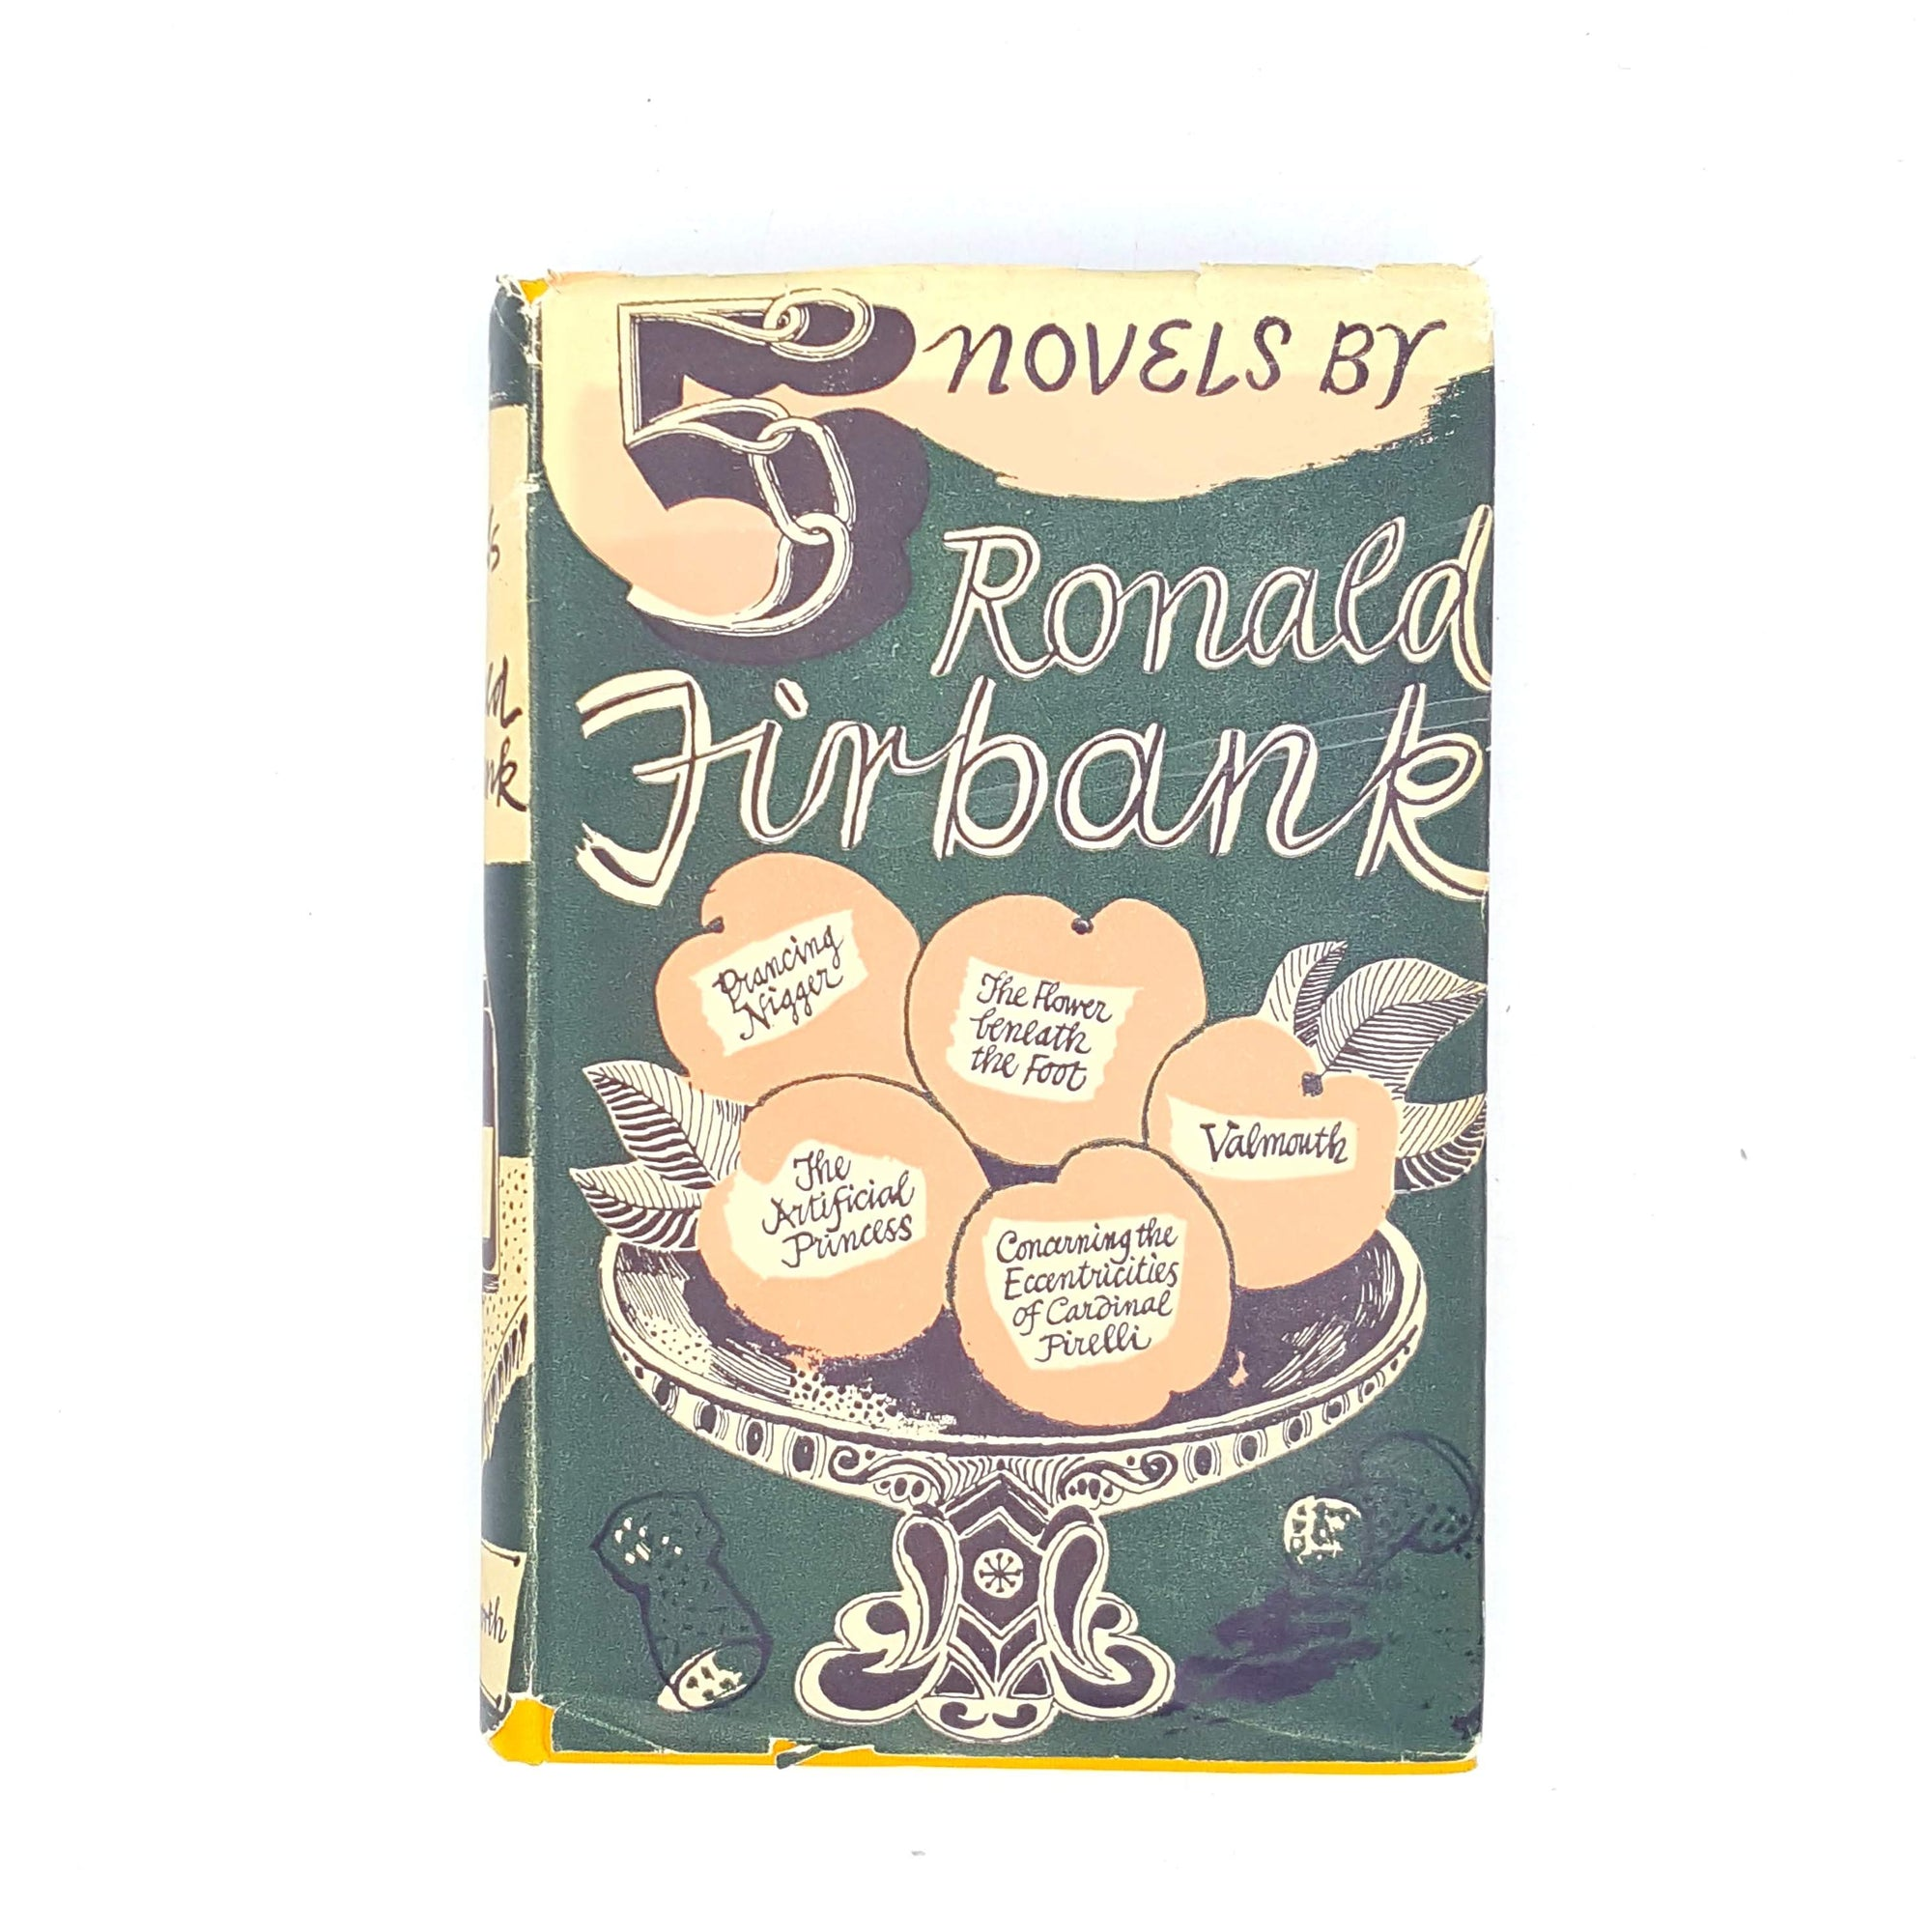 Five Novels by Ronald Firbank 1950